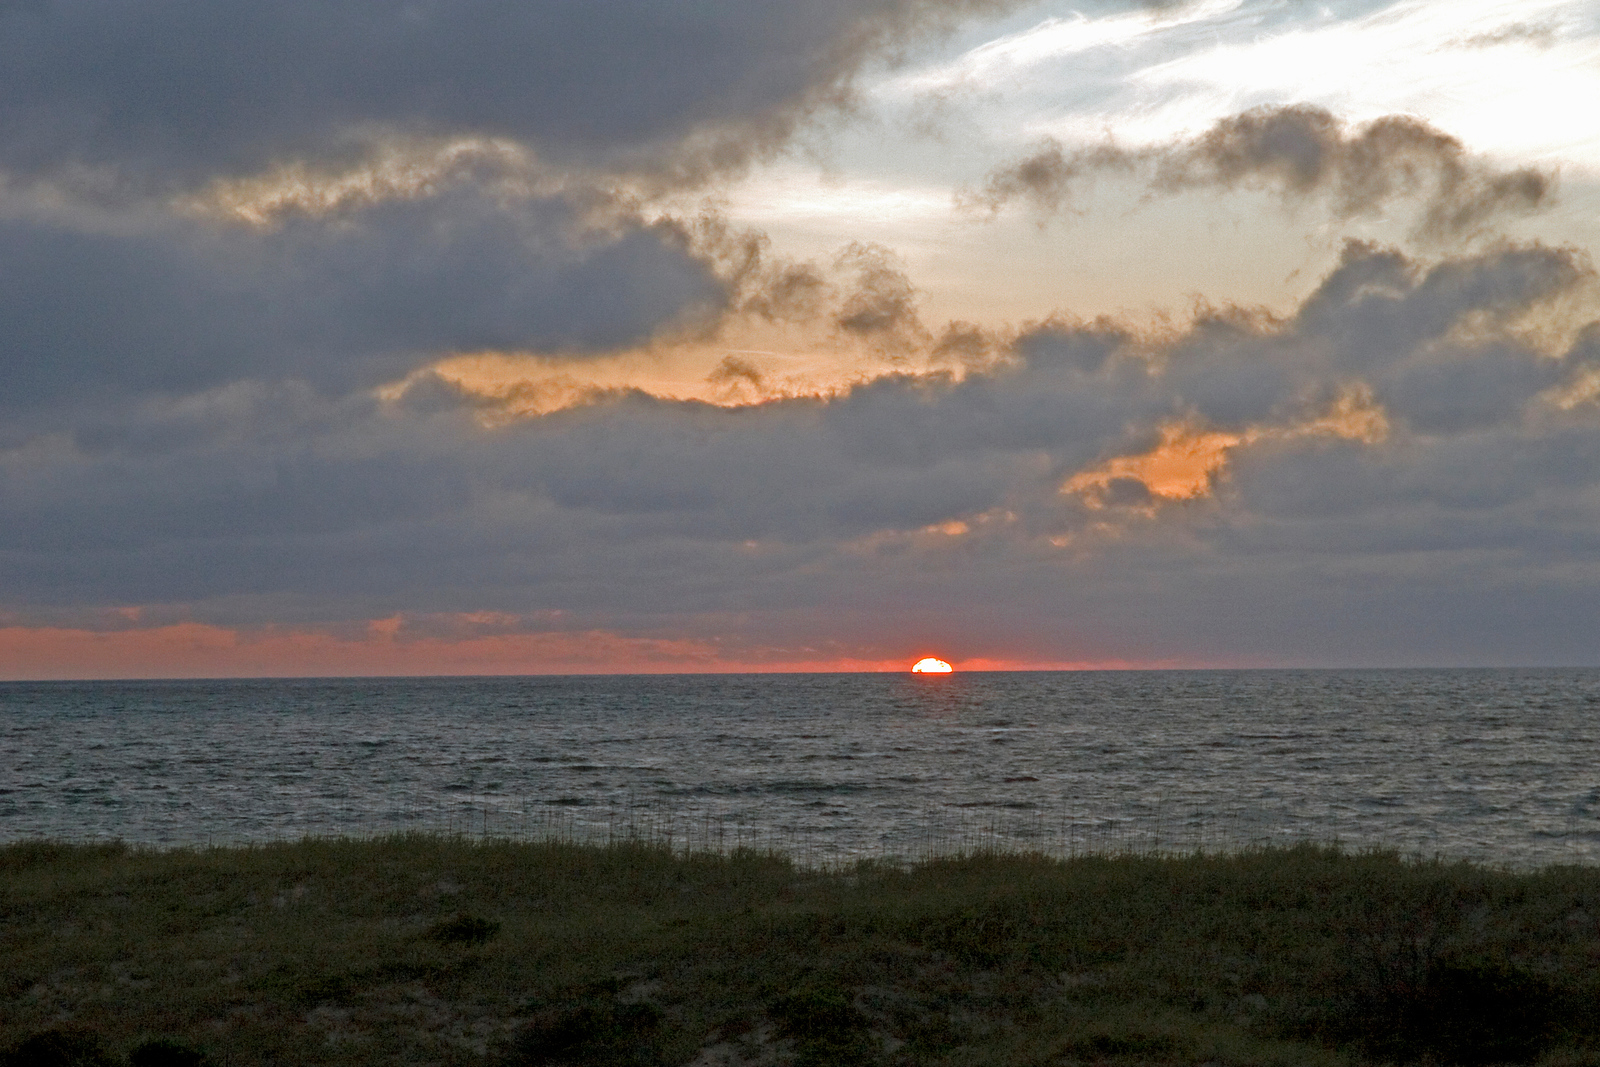 Sunrise in the Outer Banks, NC